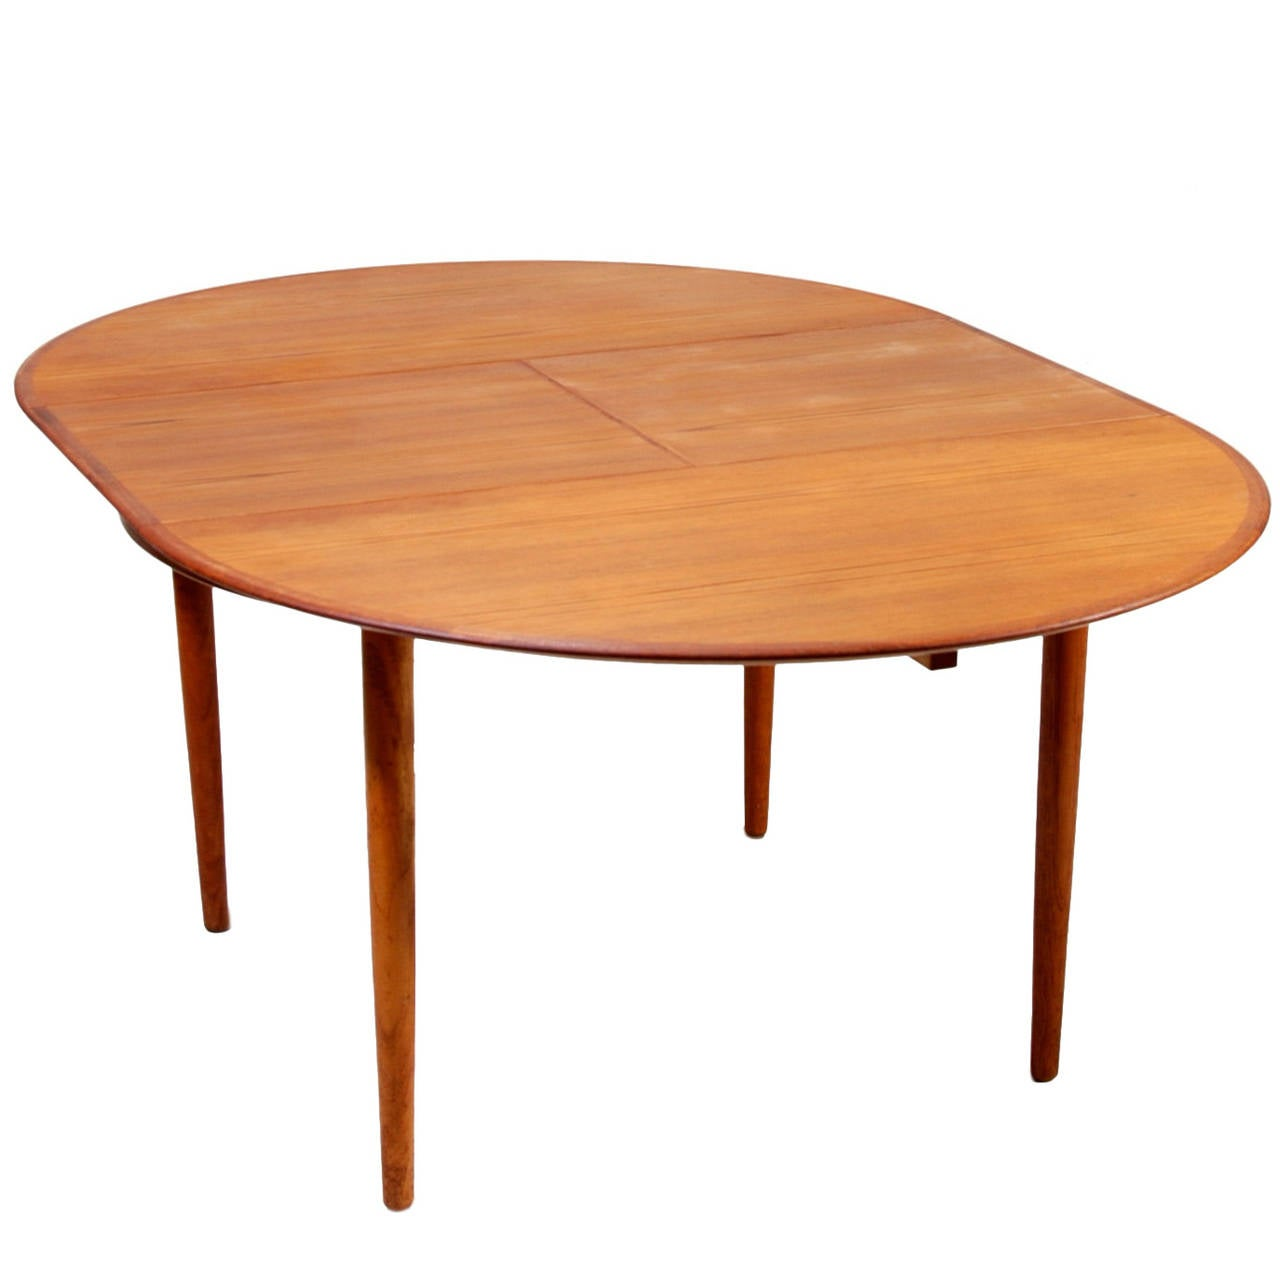 Round Danish Modern Teak Dining Table By Dyrlund At 1stdibs